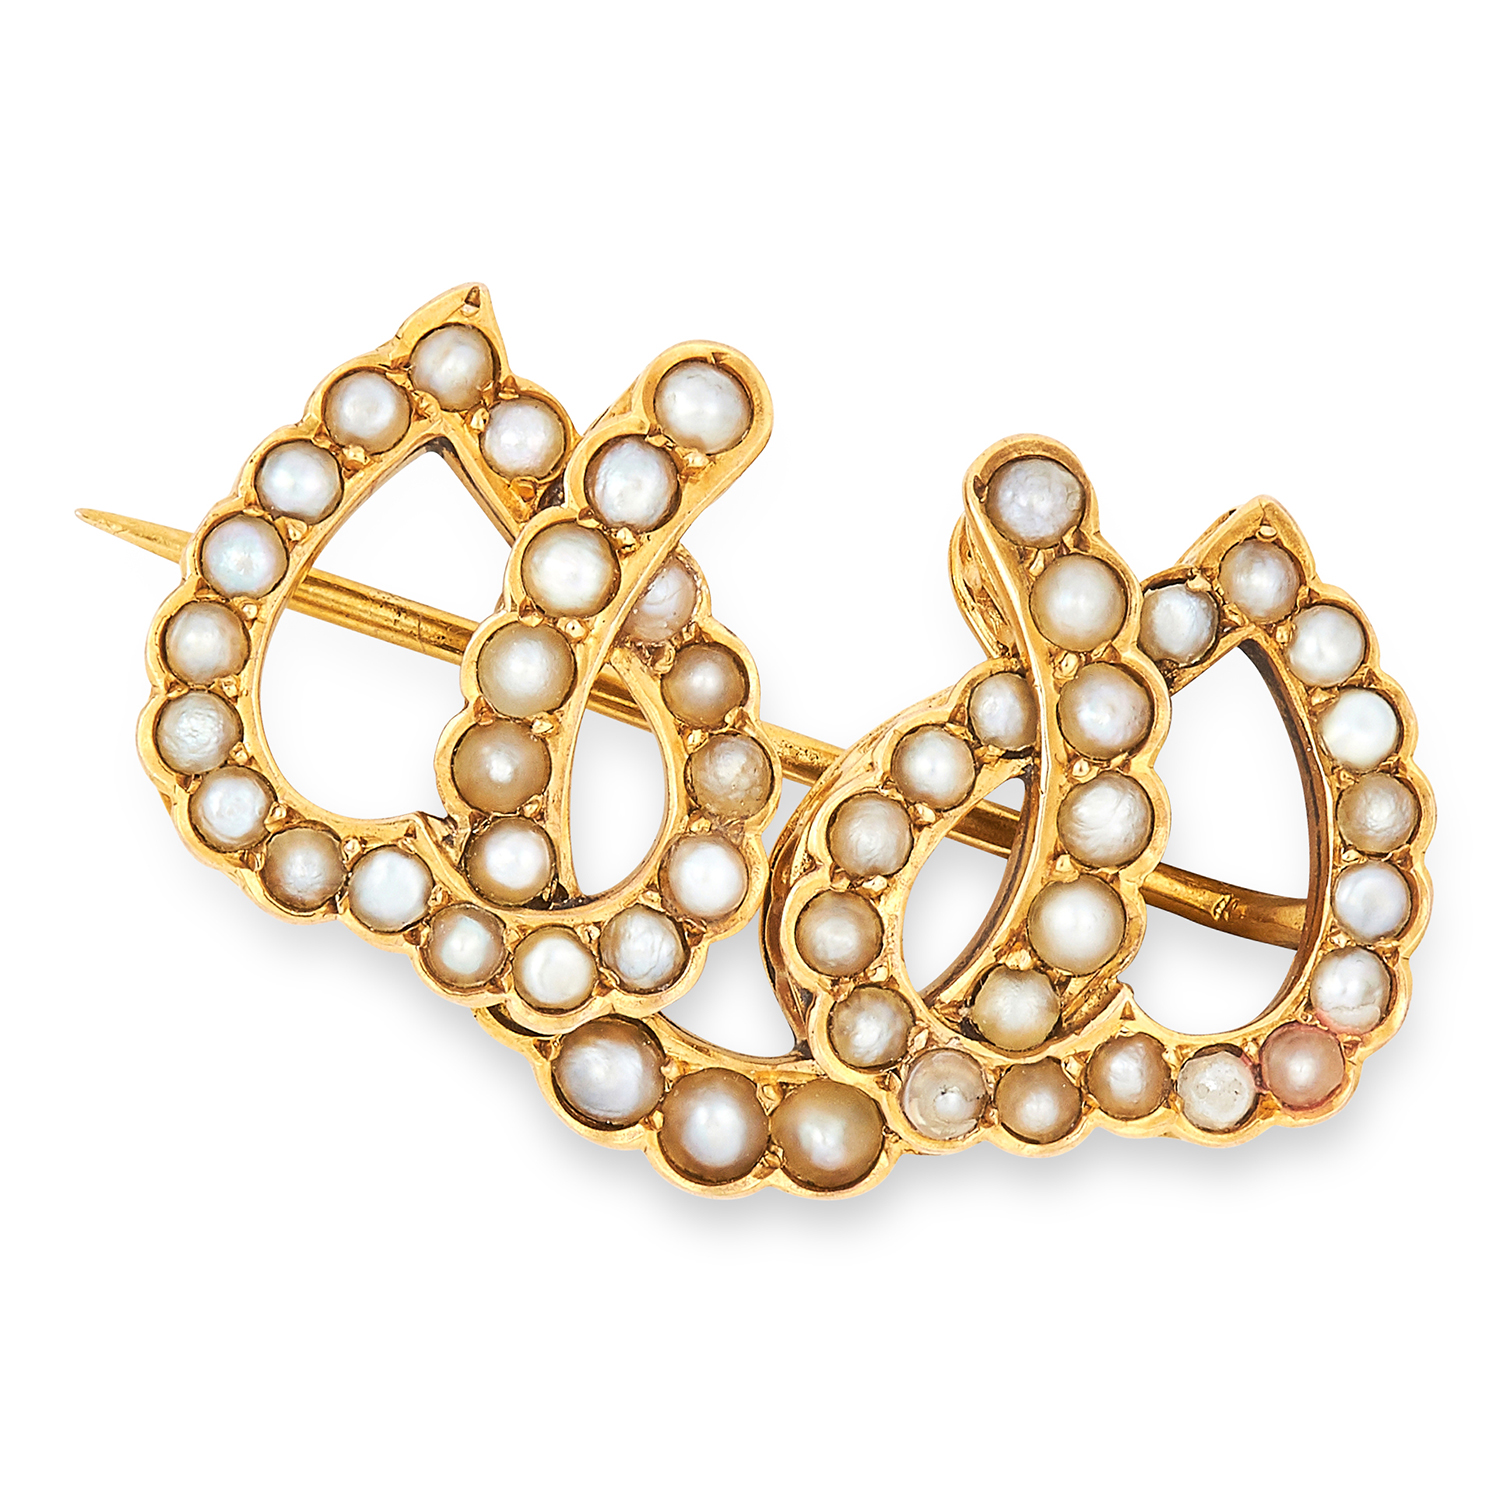 ANTIQUE PEARL HORSESHOE BROOCH, CIRCA 1900 the three overlapping horseshoes set with pearls, 2.